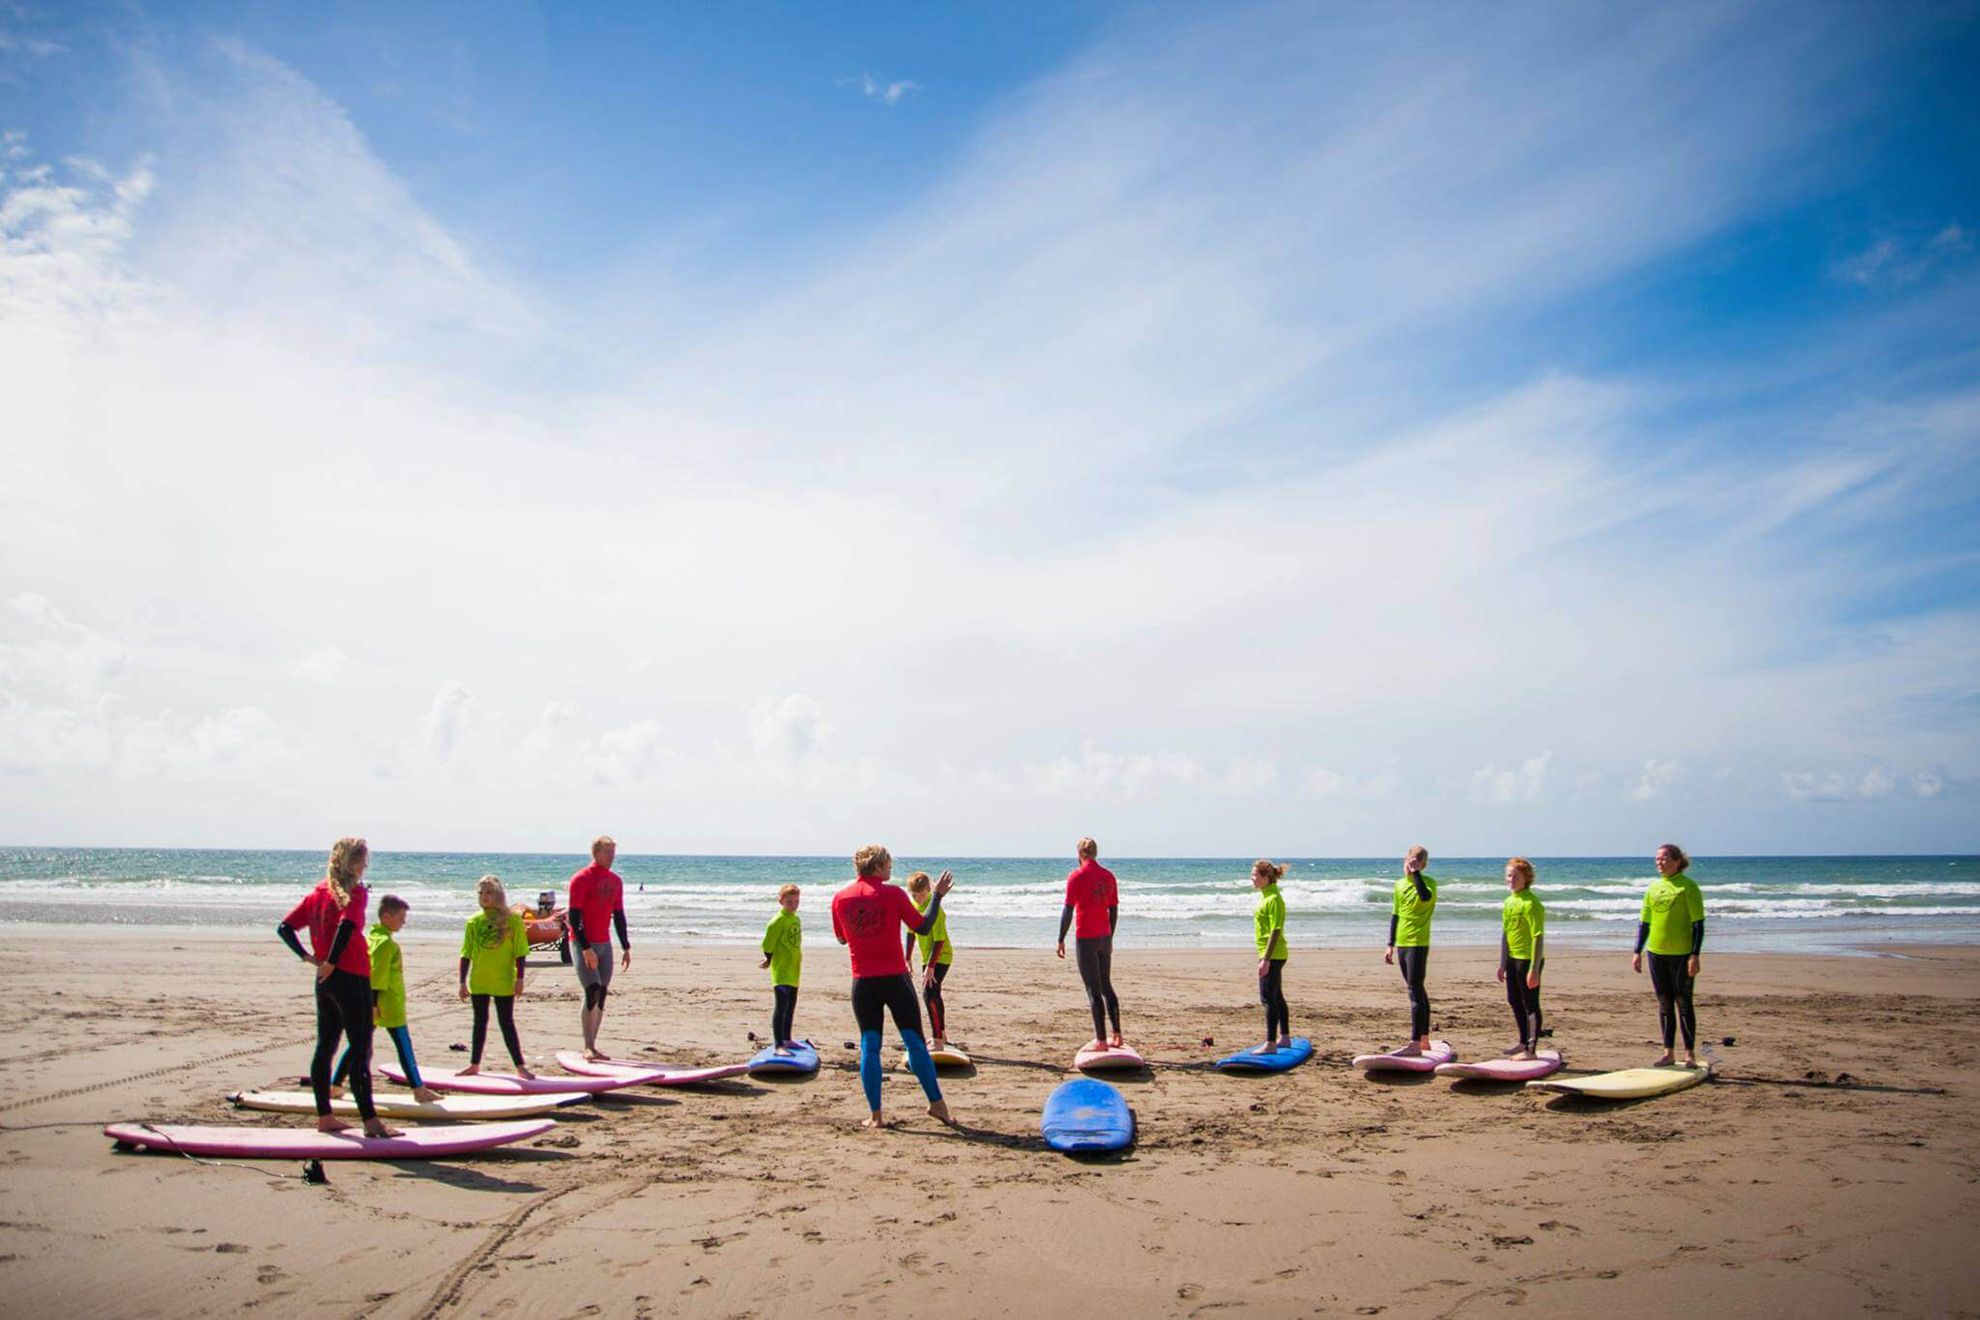 Adventure Bay provide surfing classes & coasteering at Whitsand Bay, 4 miles - image copyright Adventure Bay